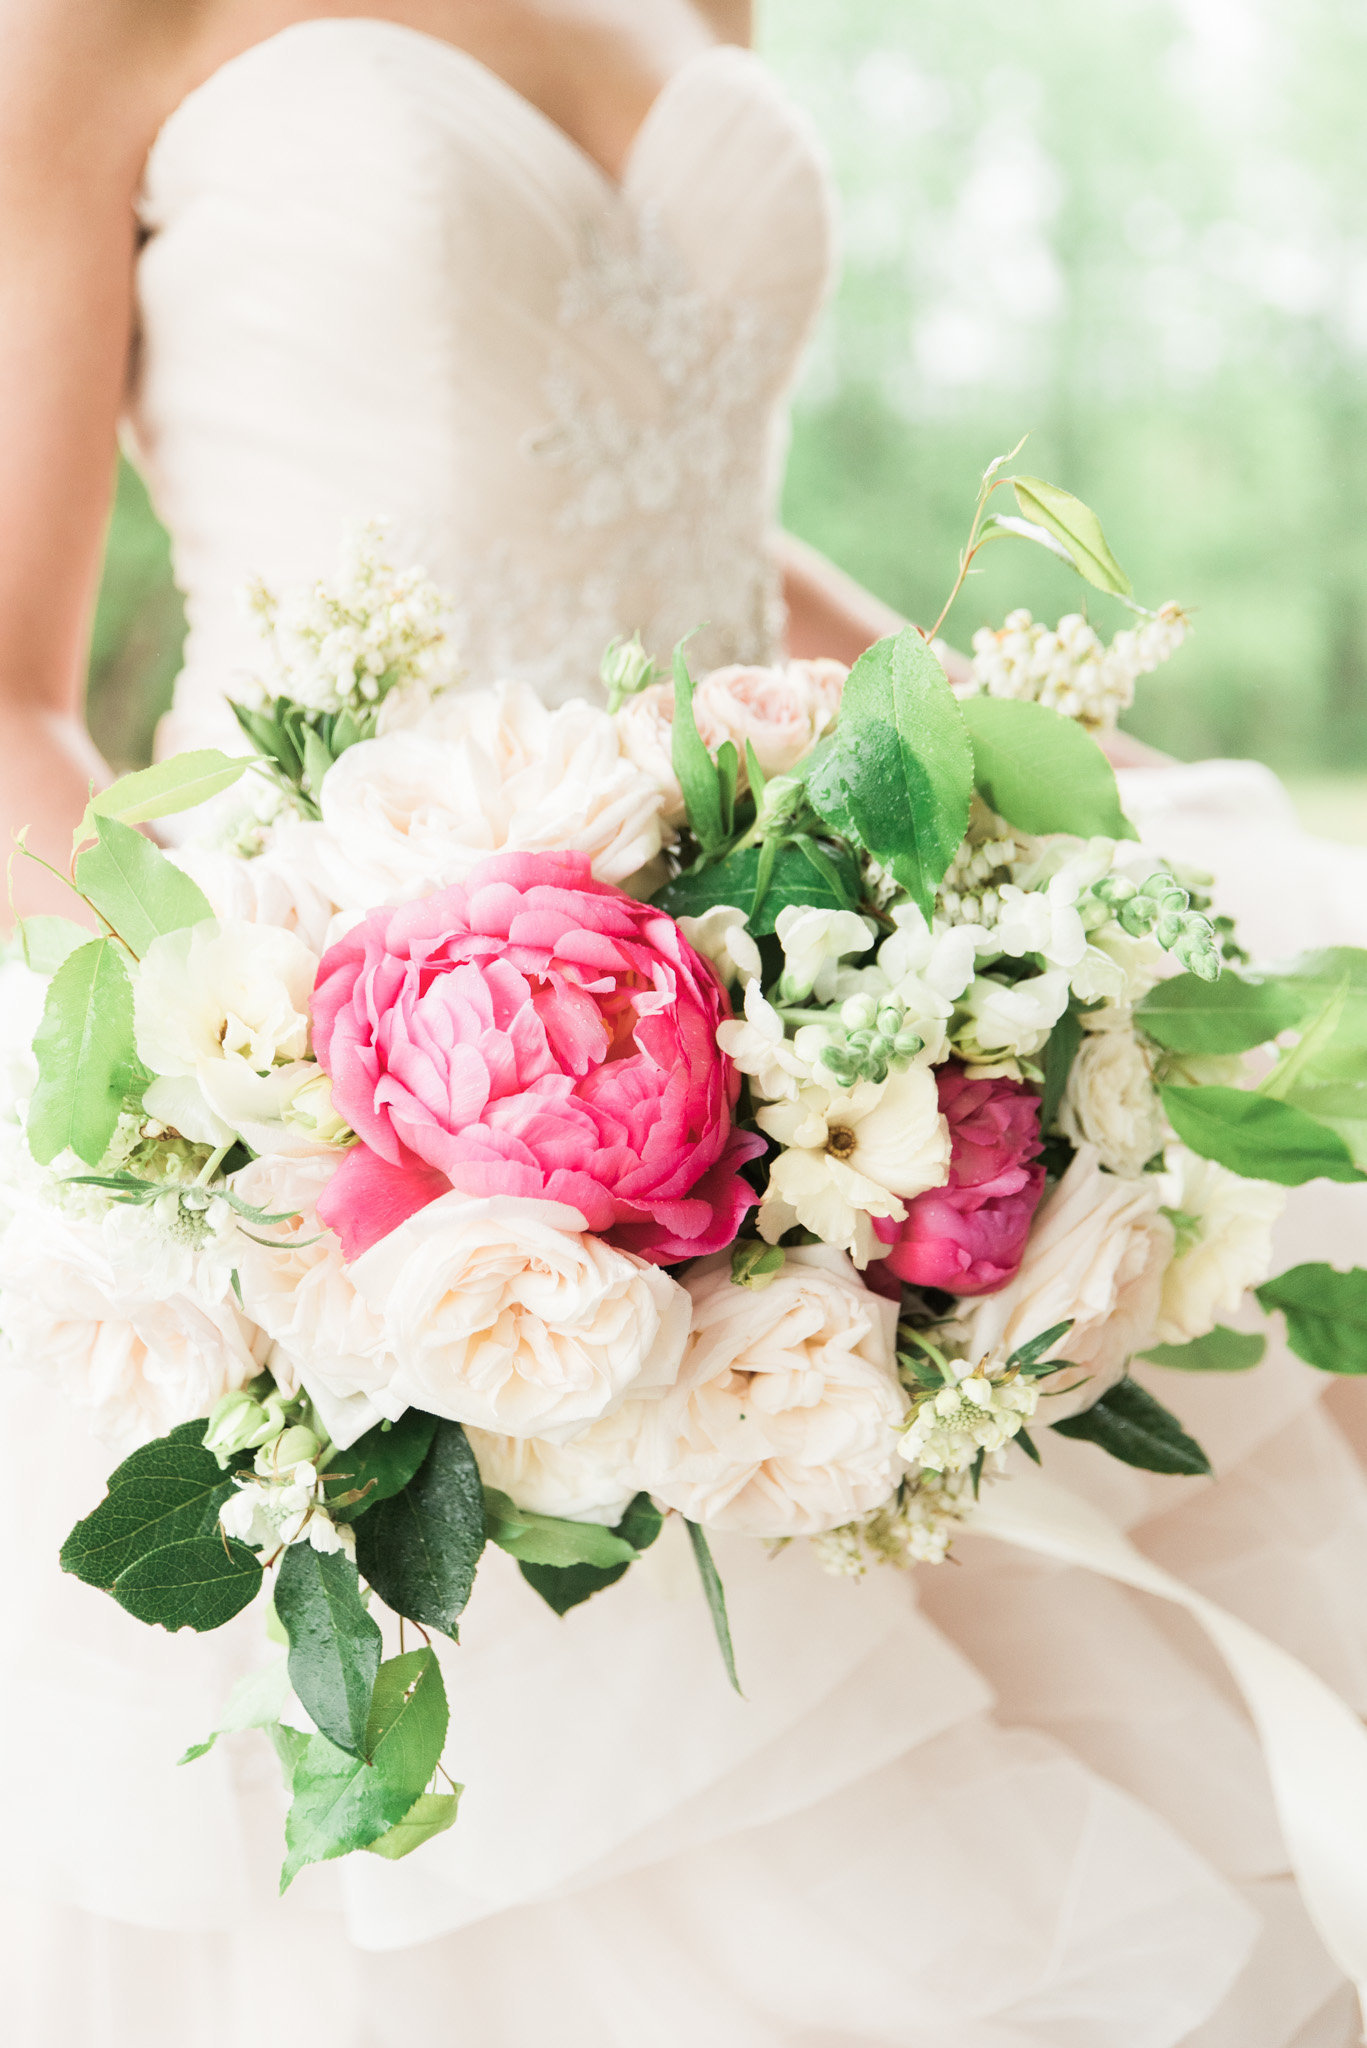 Bride dressed in strapless wedding dress holding pink and white peonies bouquet